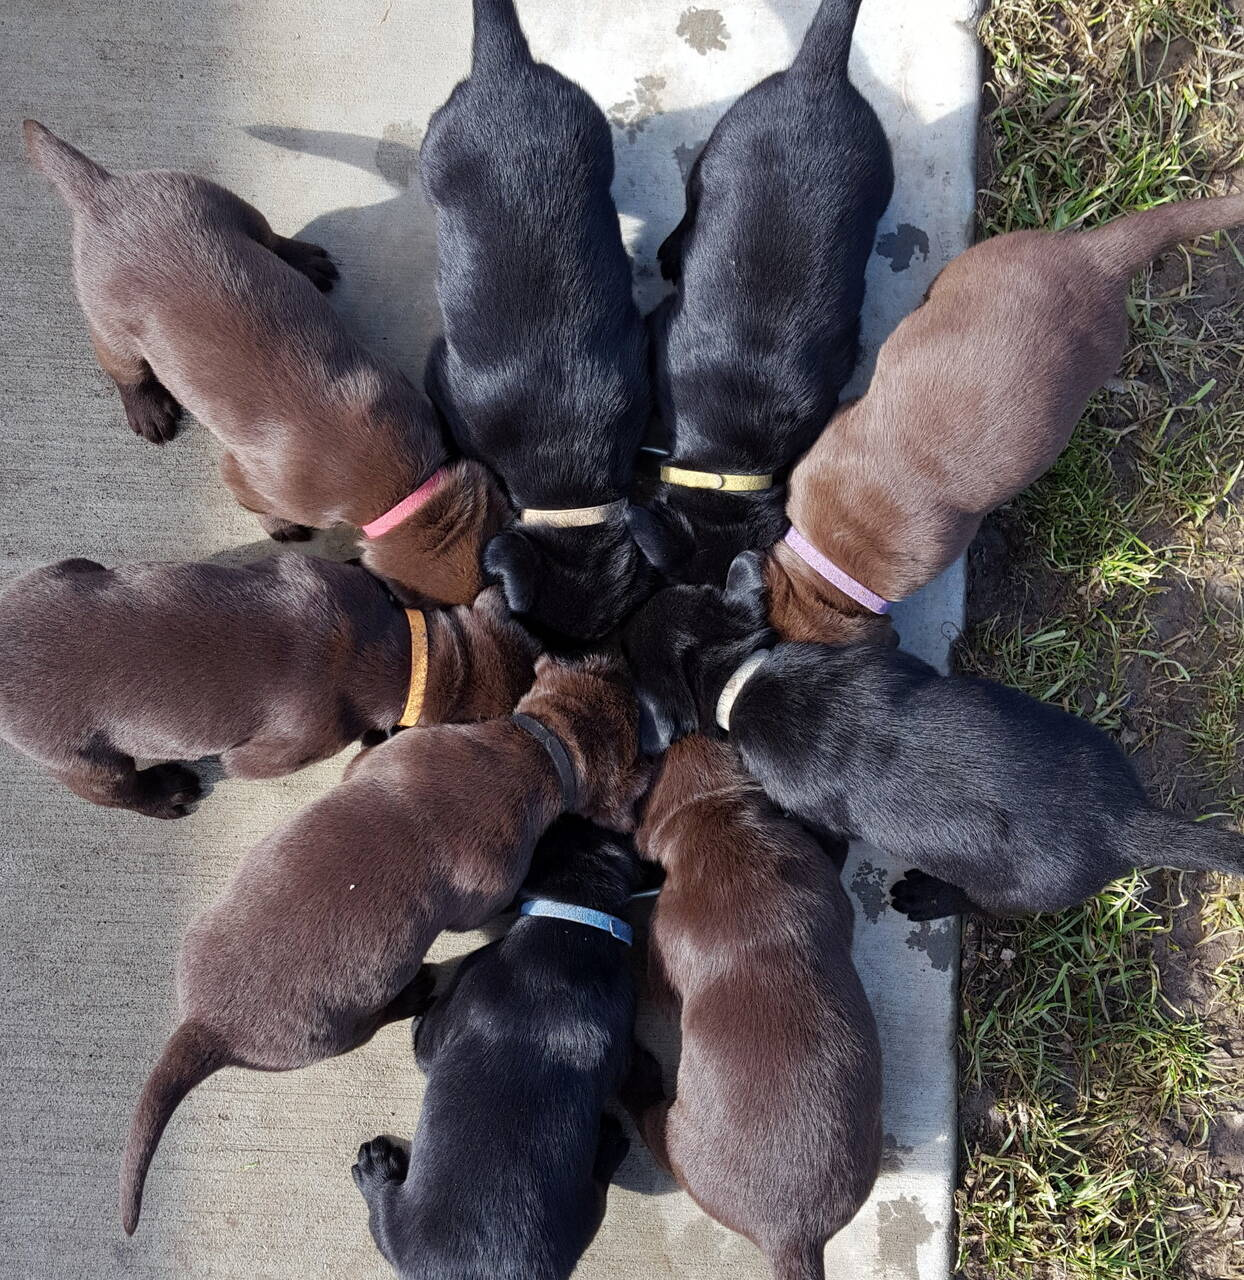 lab puppies for sale near me yard